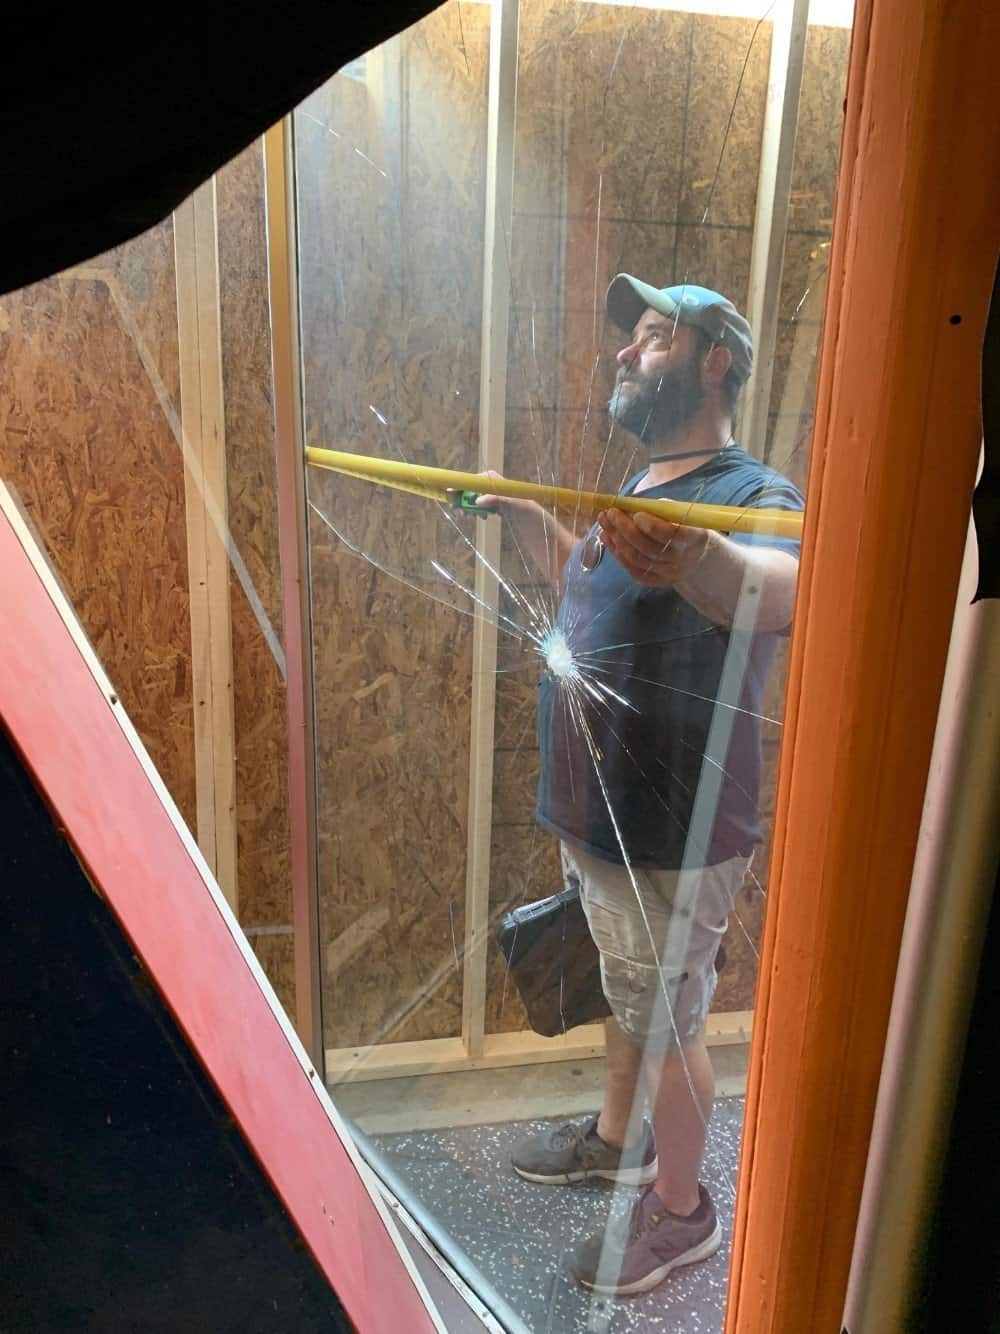 Owner Isaac Smith measuring for replacement storefront glass